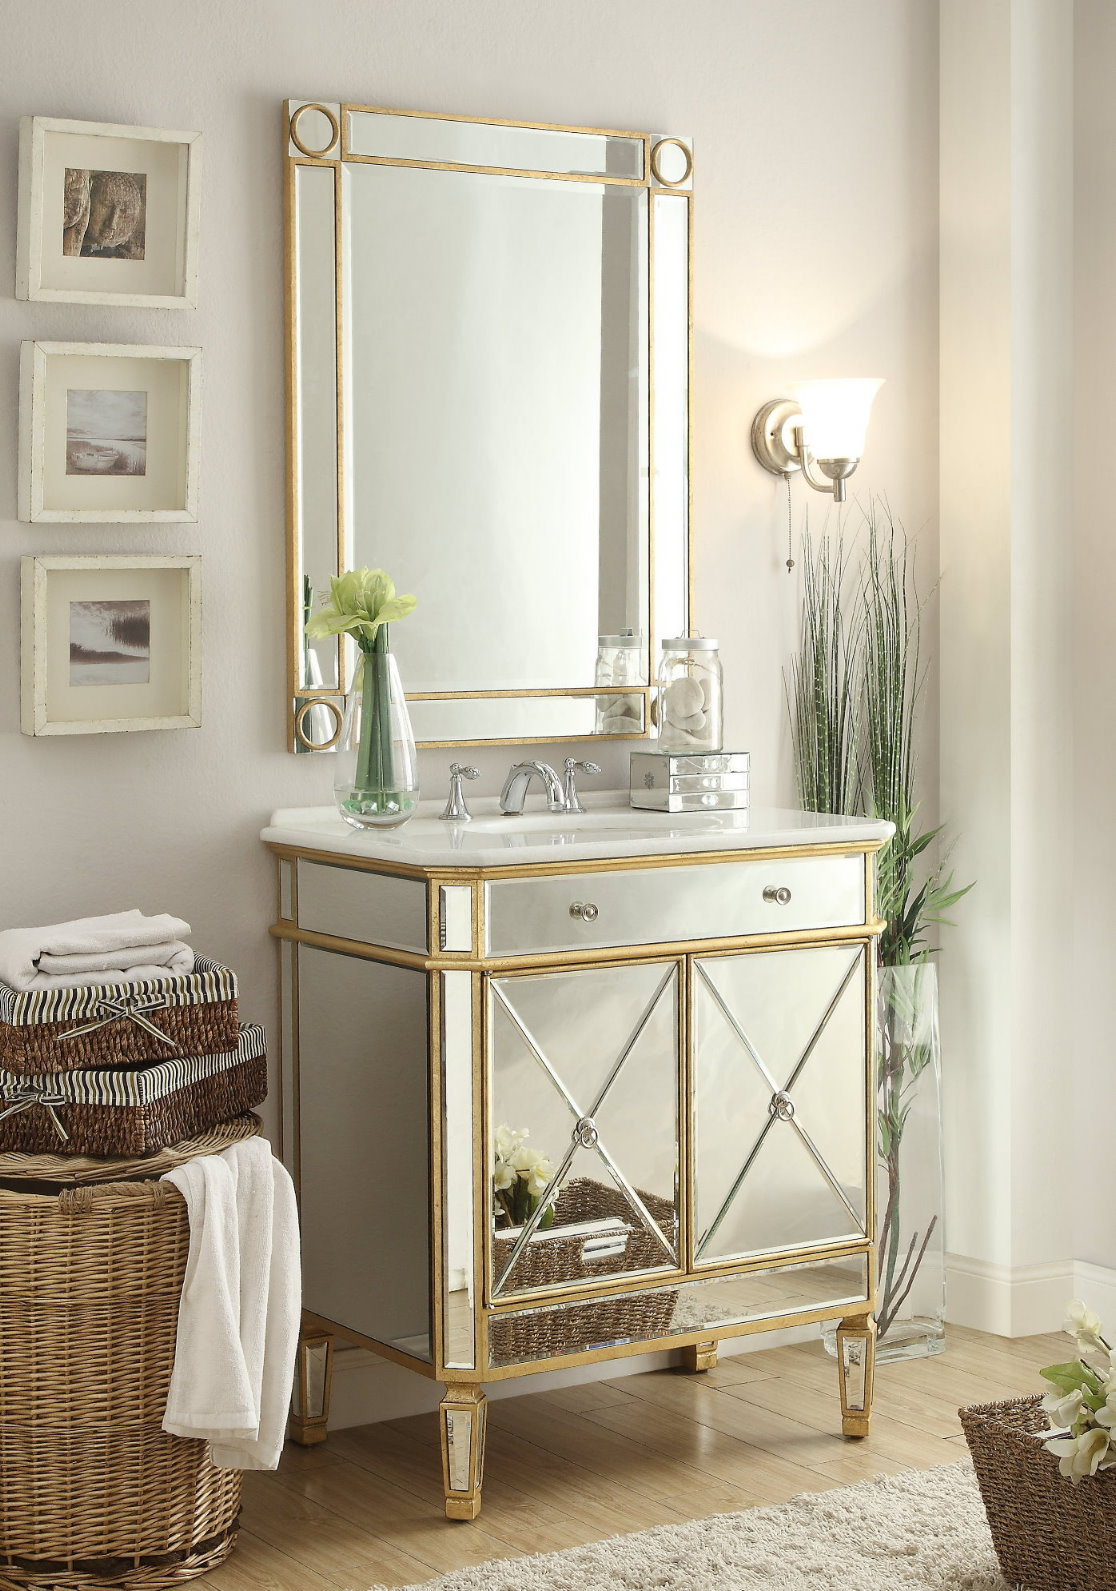 Bathroom Vanities Mirrors adelina 32 inch mirrored gold bathroom vanity & mirror